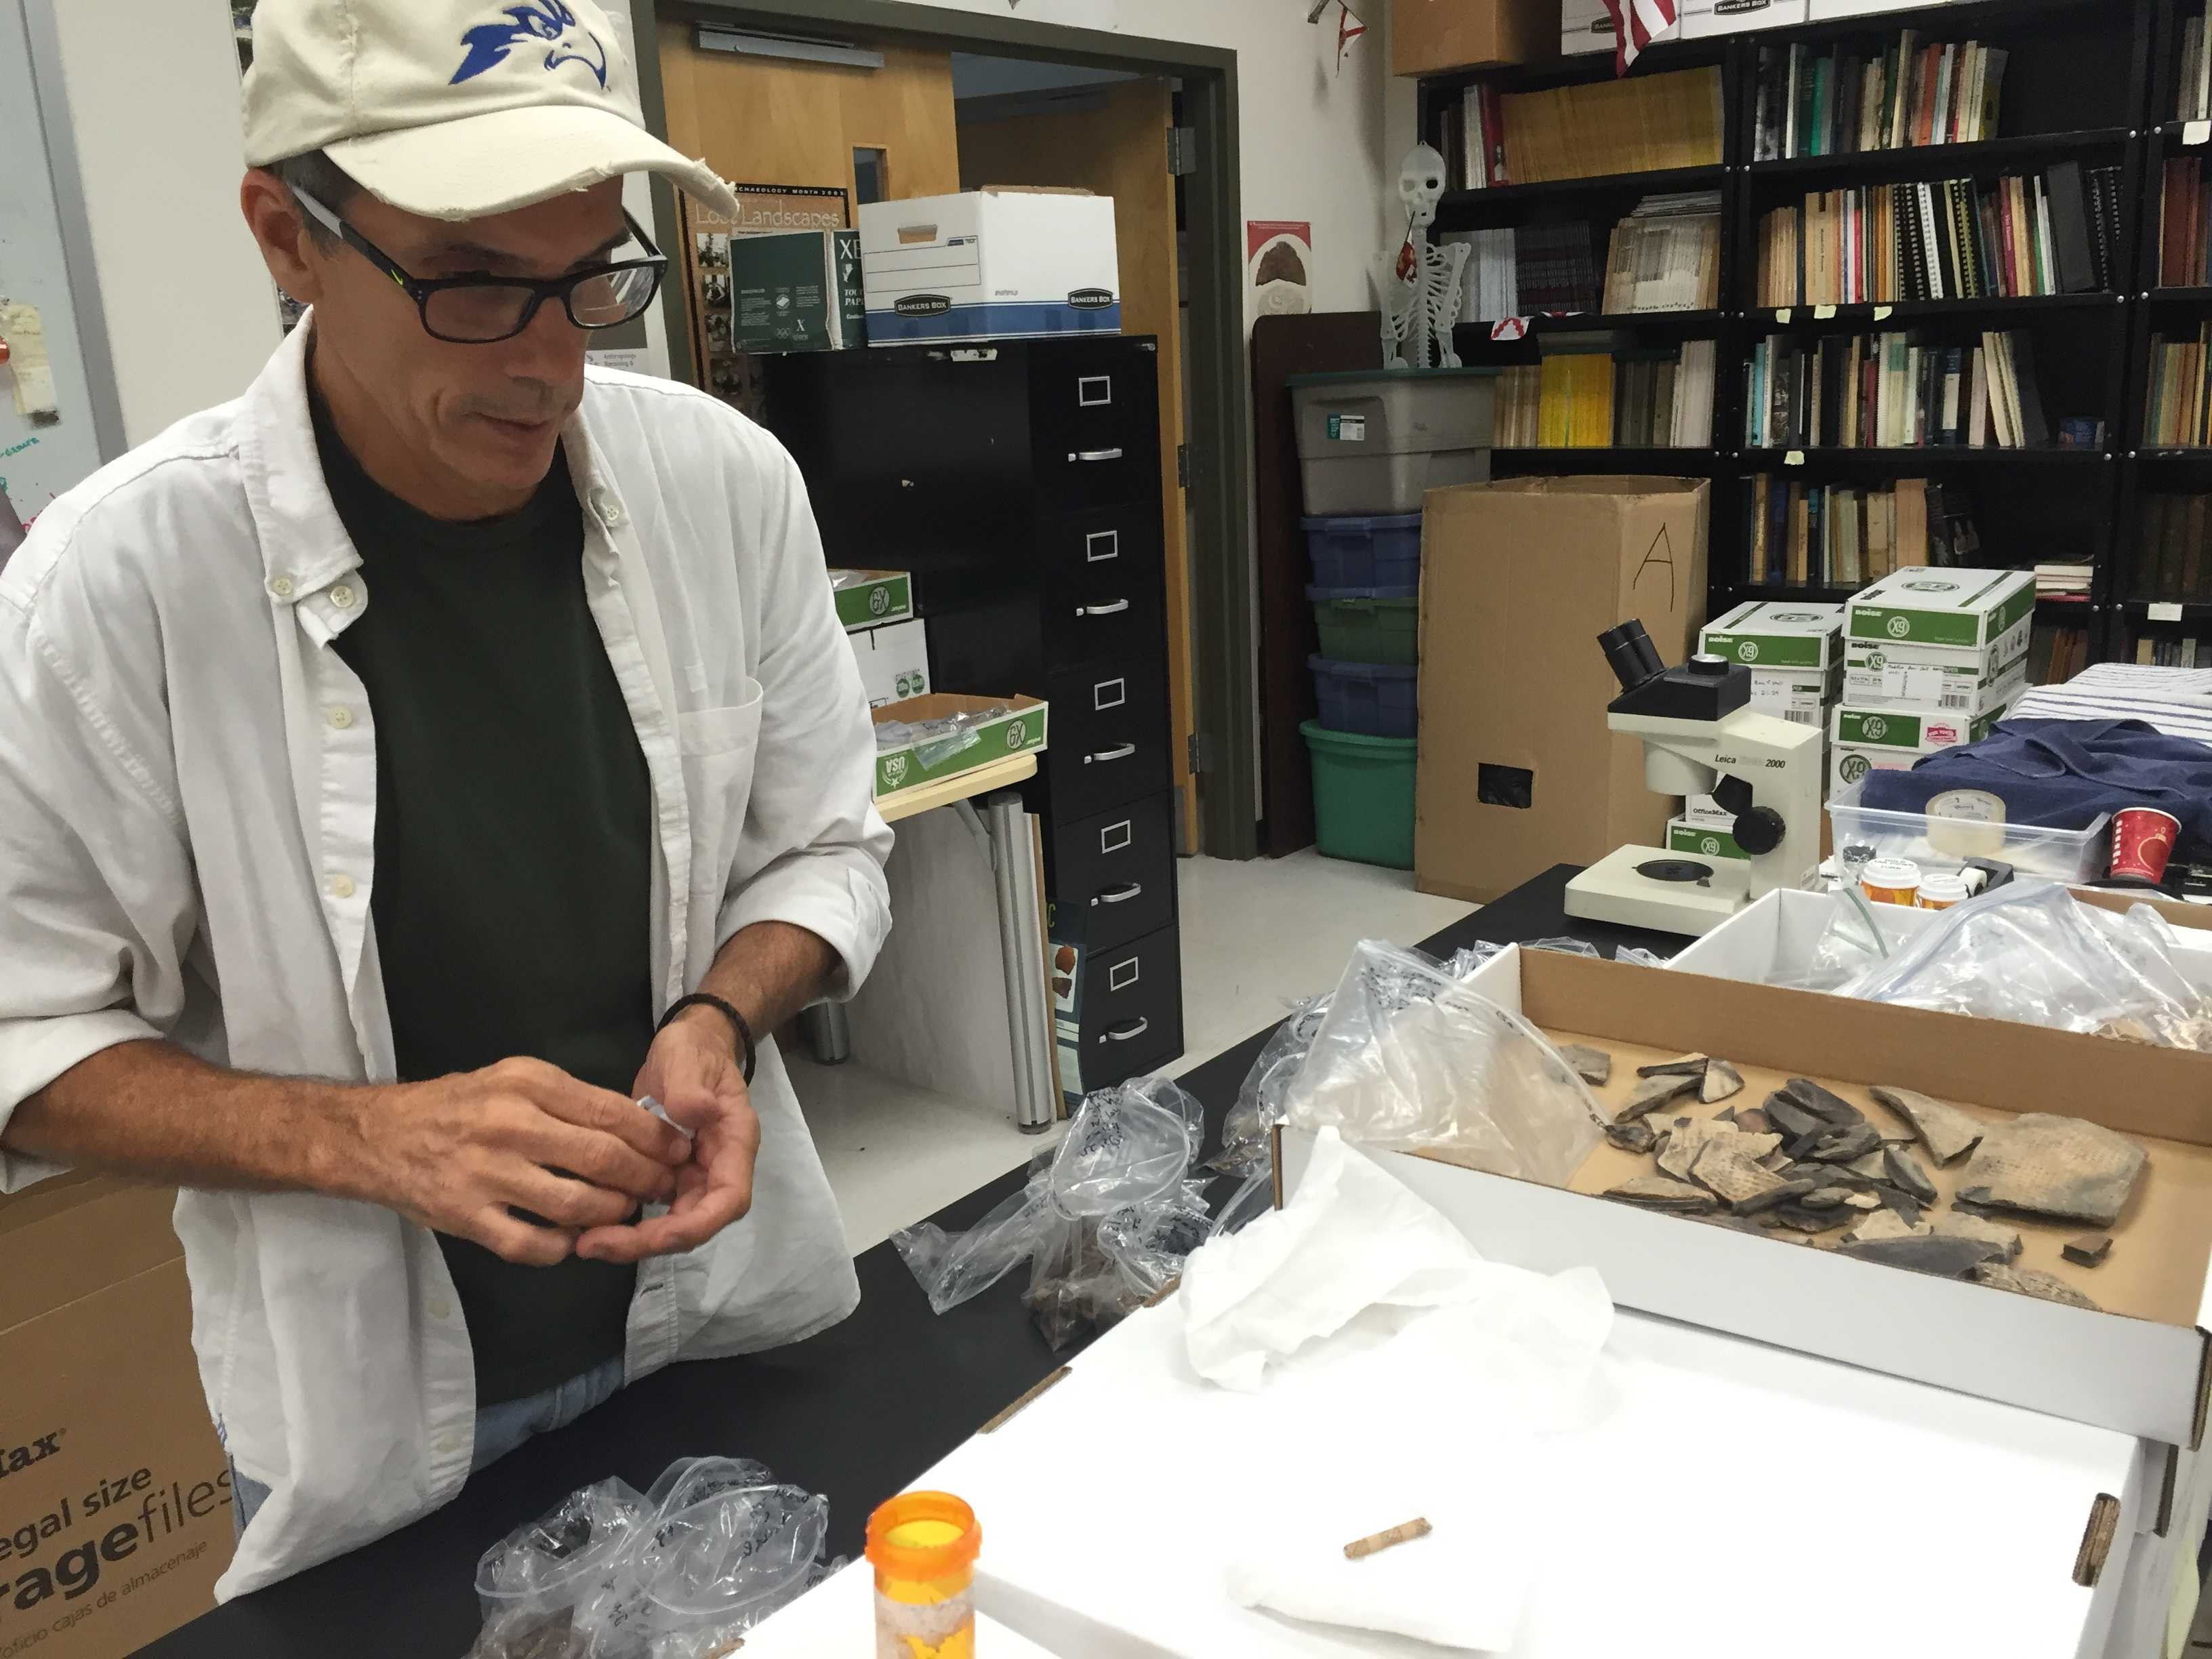 Archaeology students find wealth of knowledge in Native American trash piles